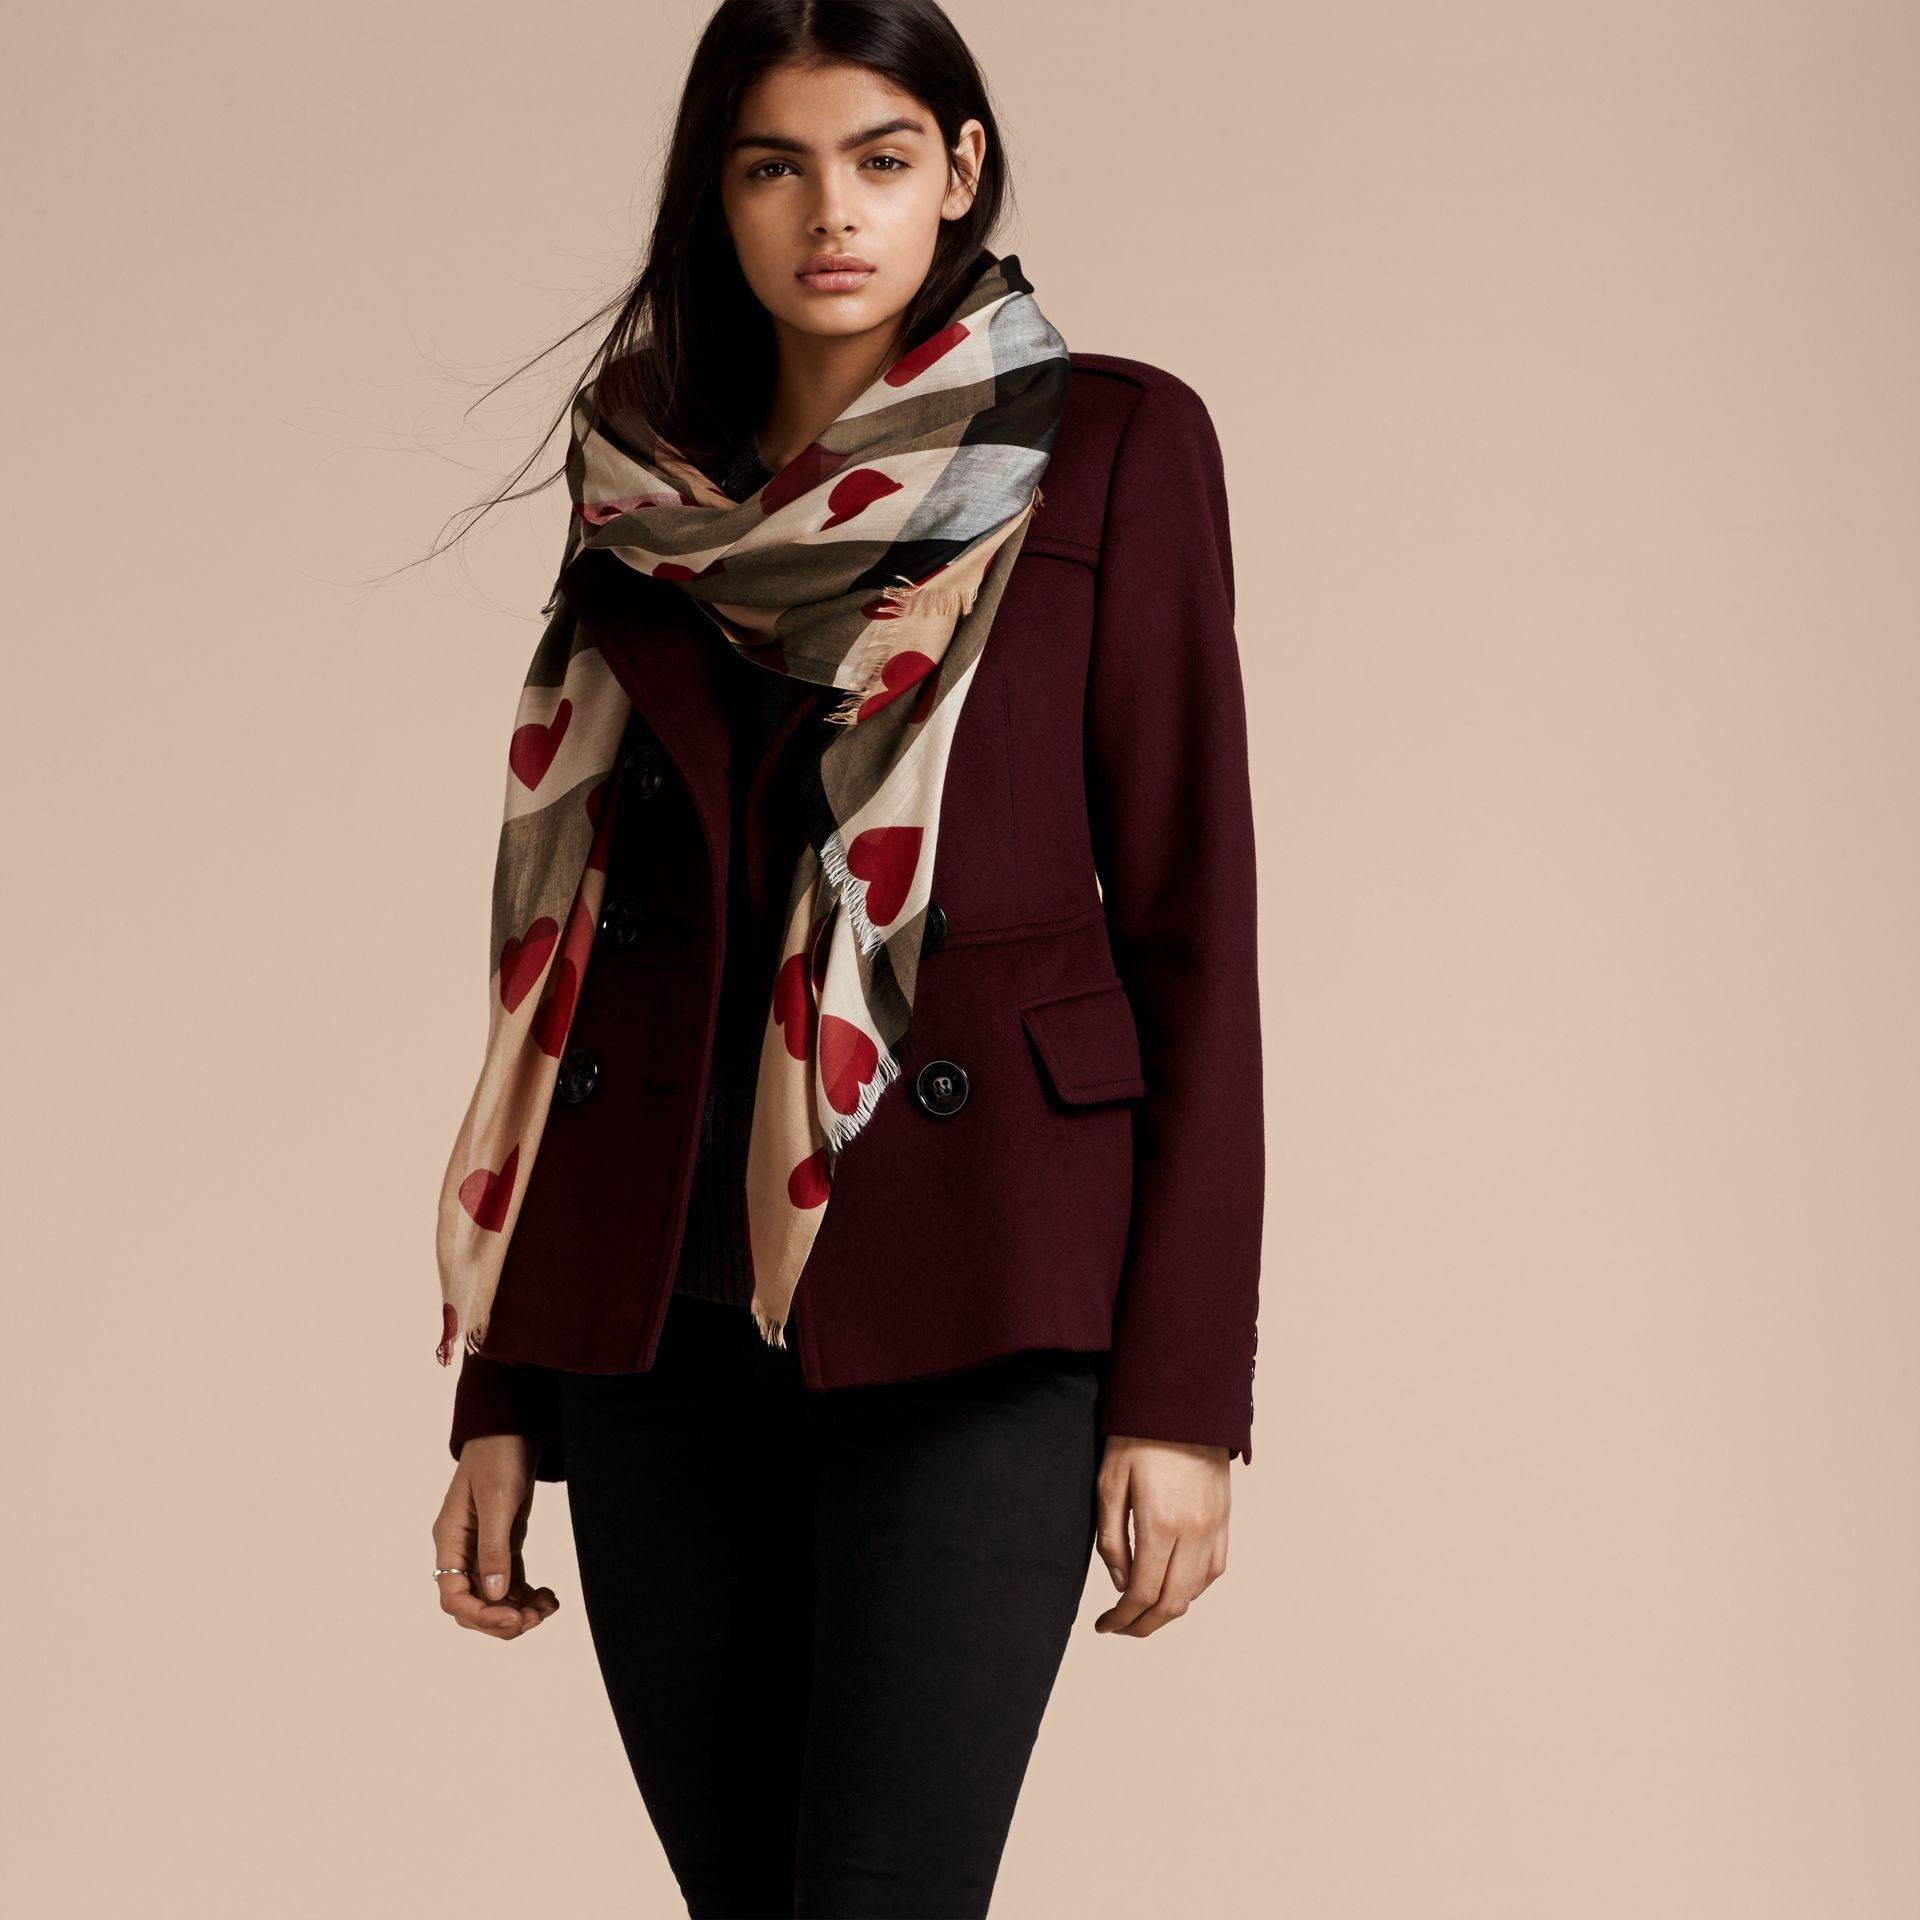 Heart and Check Modal and Cashmere Scarf in Camel/red - Women | Burberry Hong Kong - gallery image 3